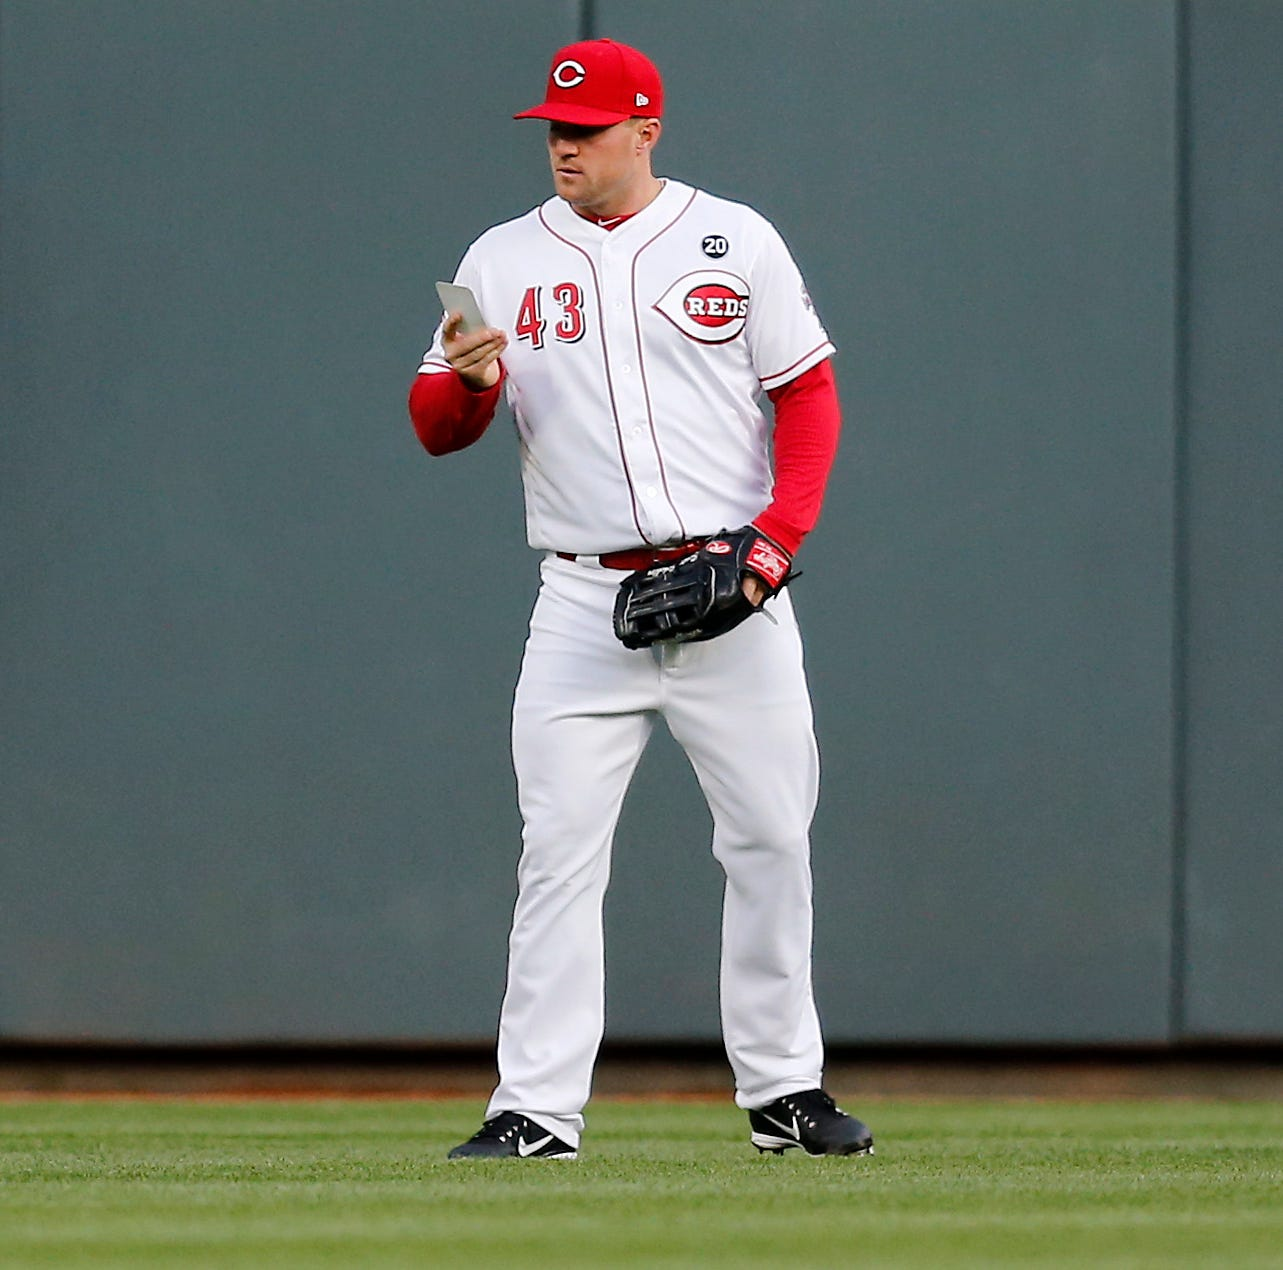 Cincinnati Reds outfielders gain a defensive edge with pockets full of information